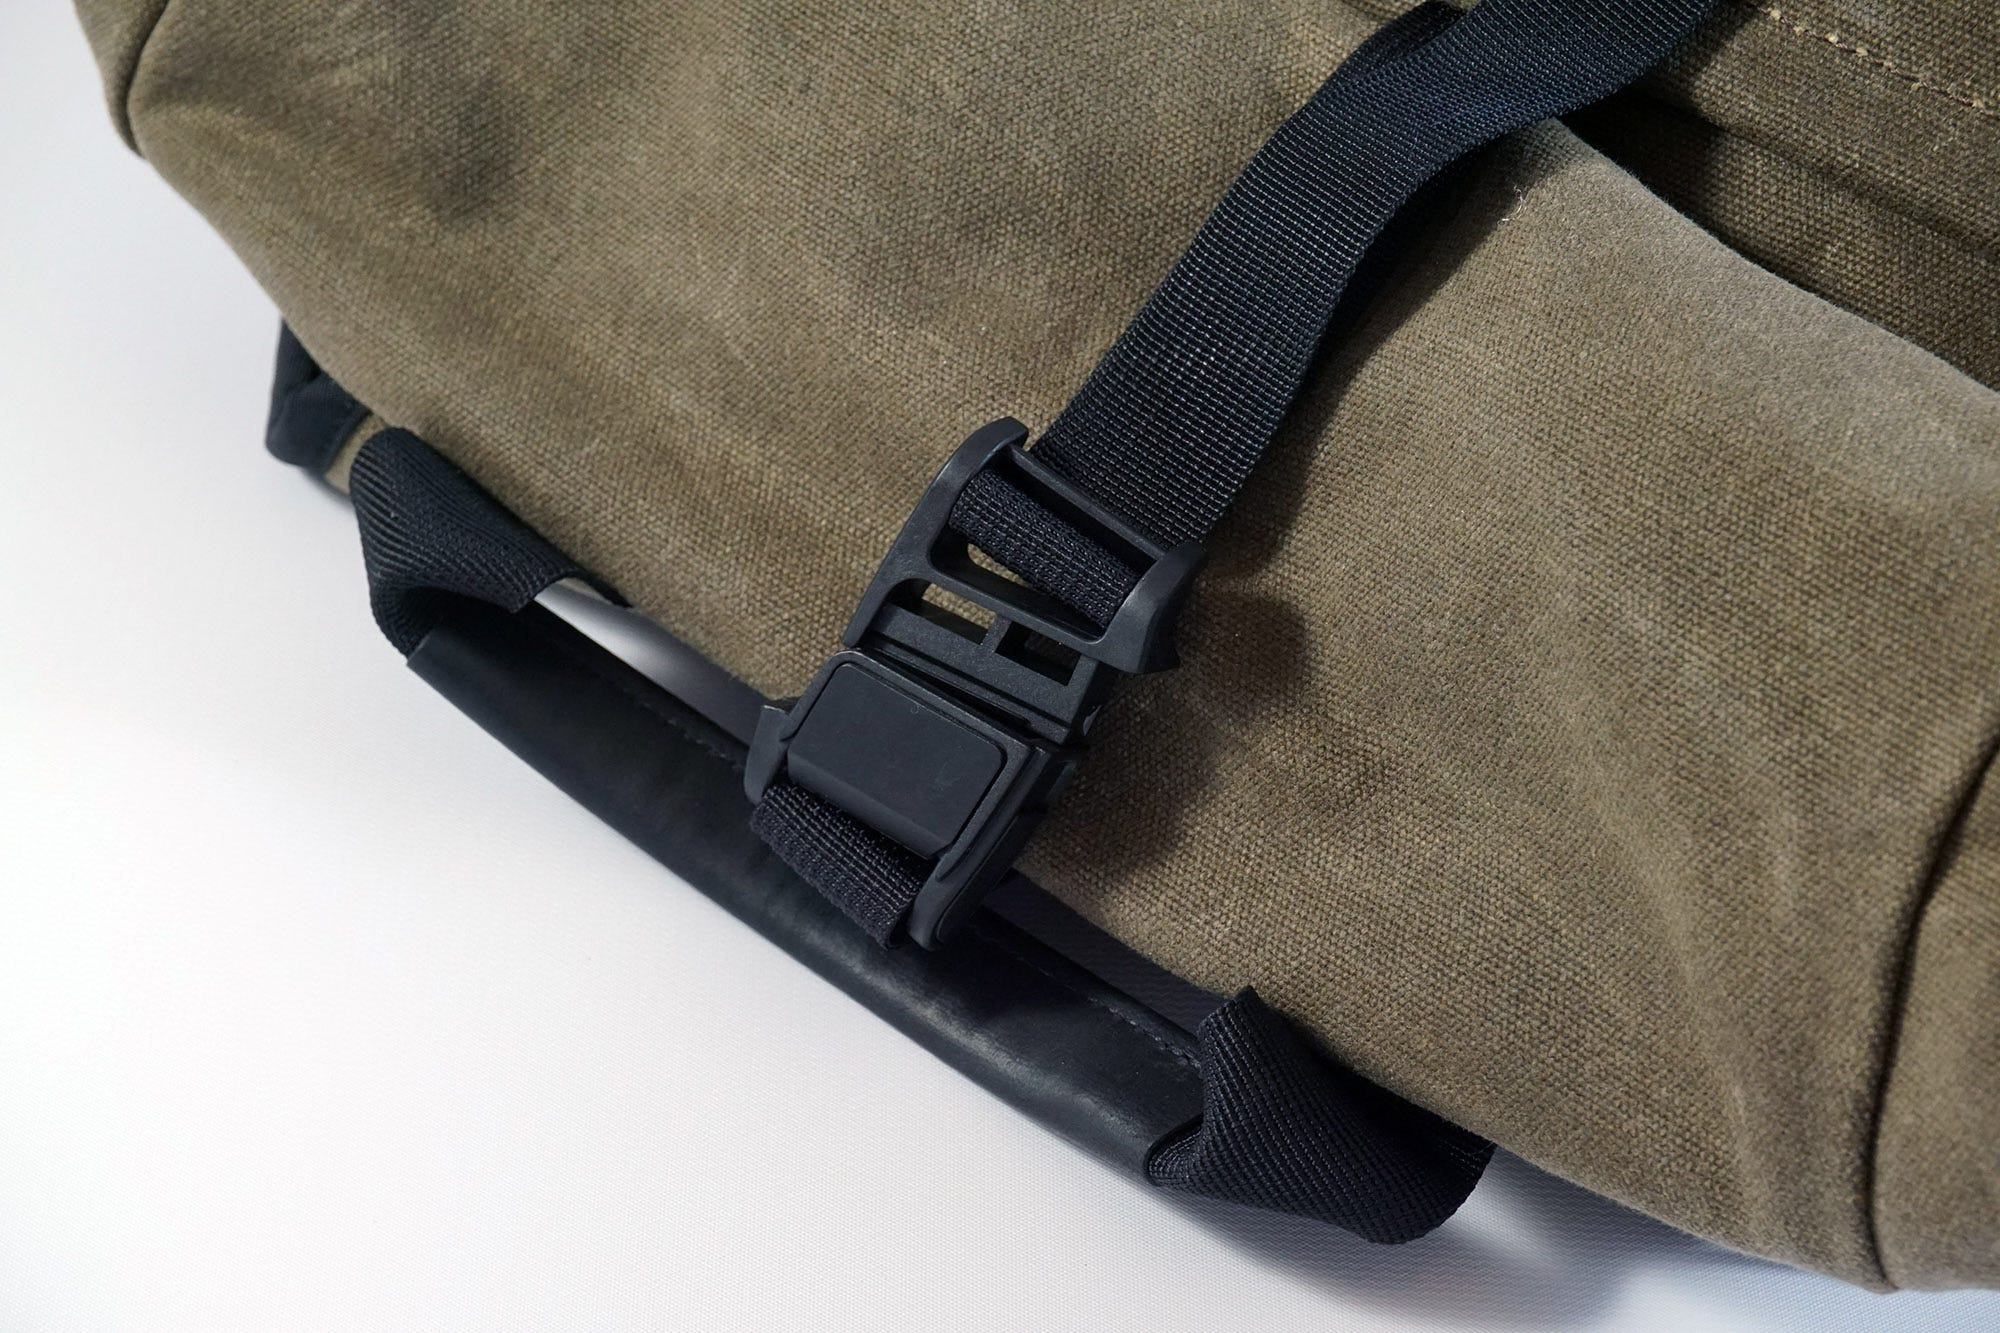 The strap for securing the roll top uses a unique magnetic sliding clasp.